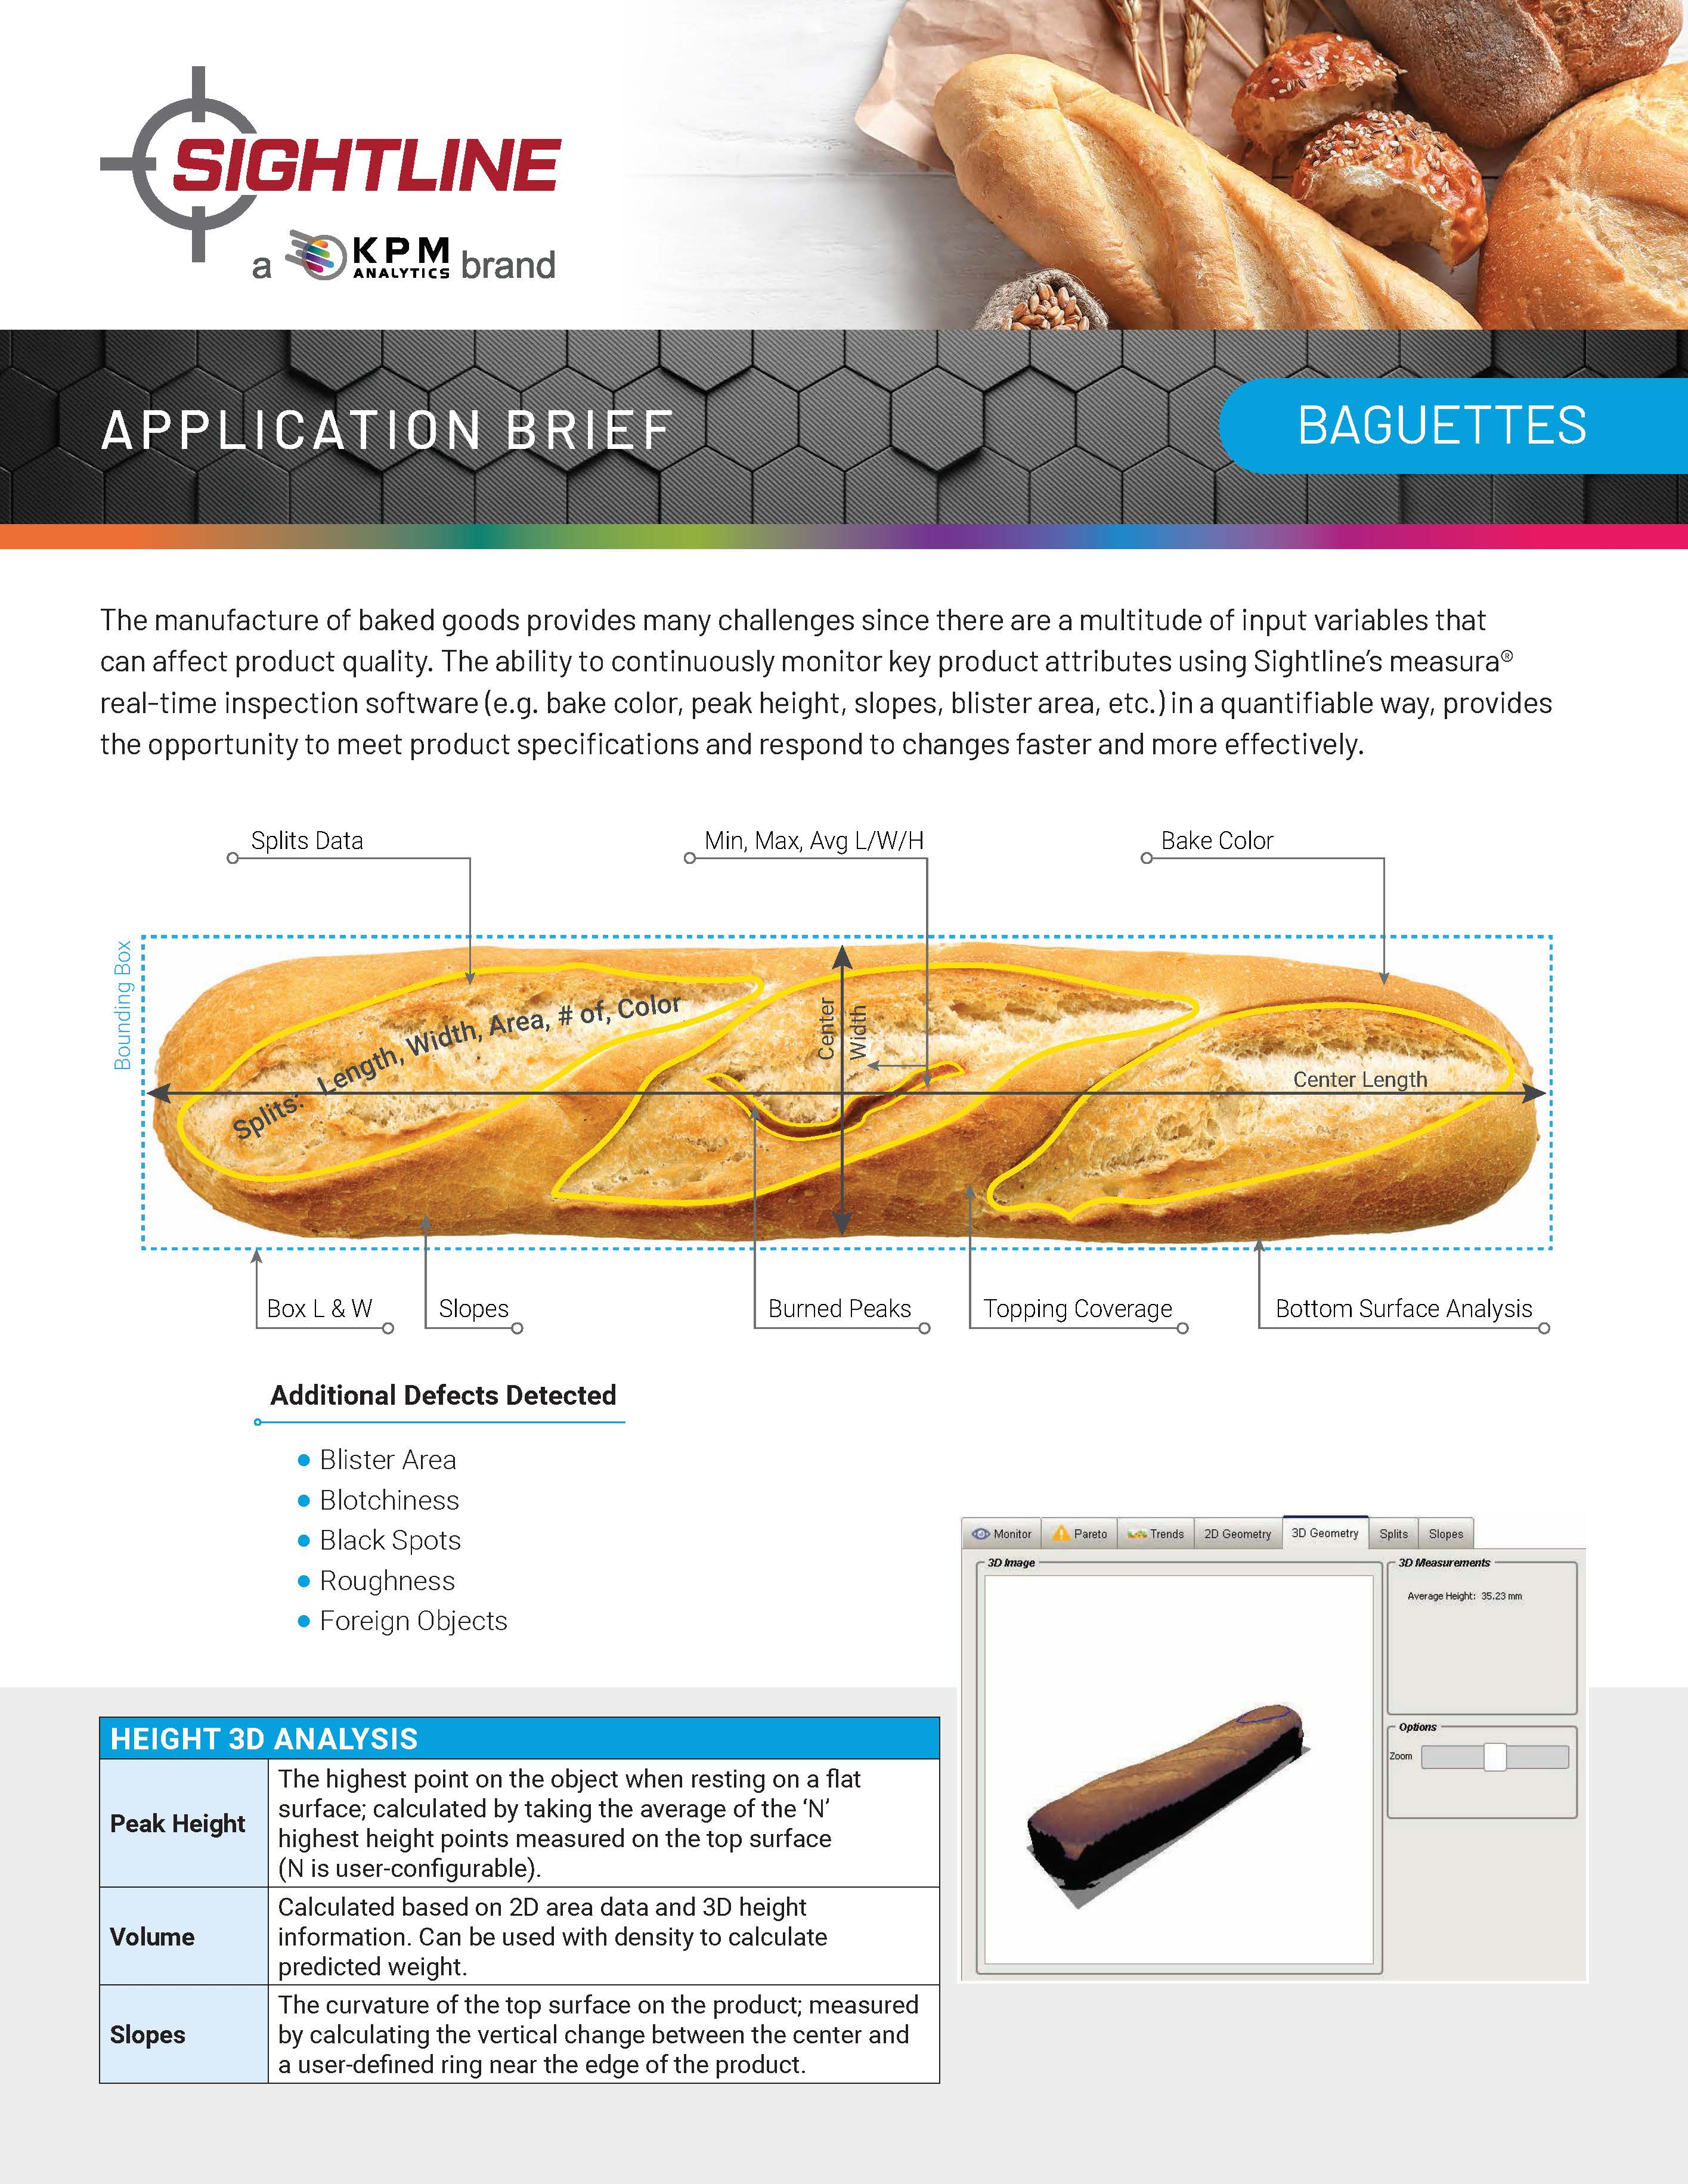 Vision Inspection of Baguettes